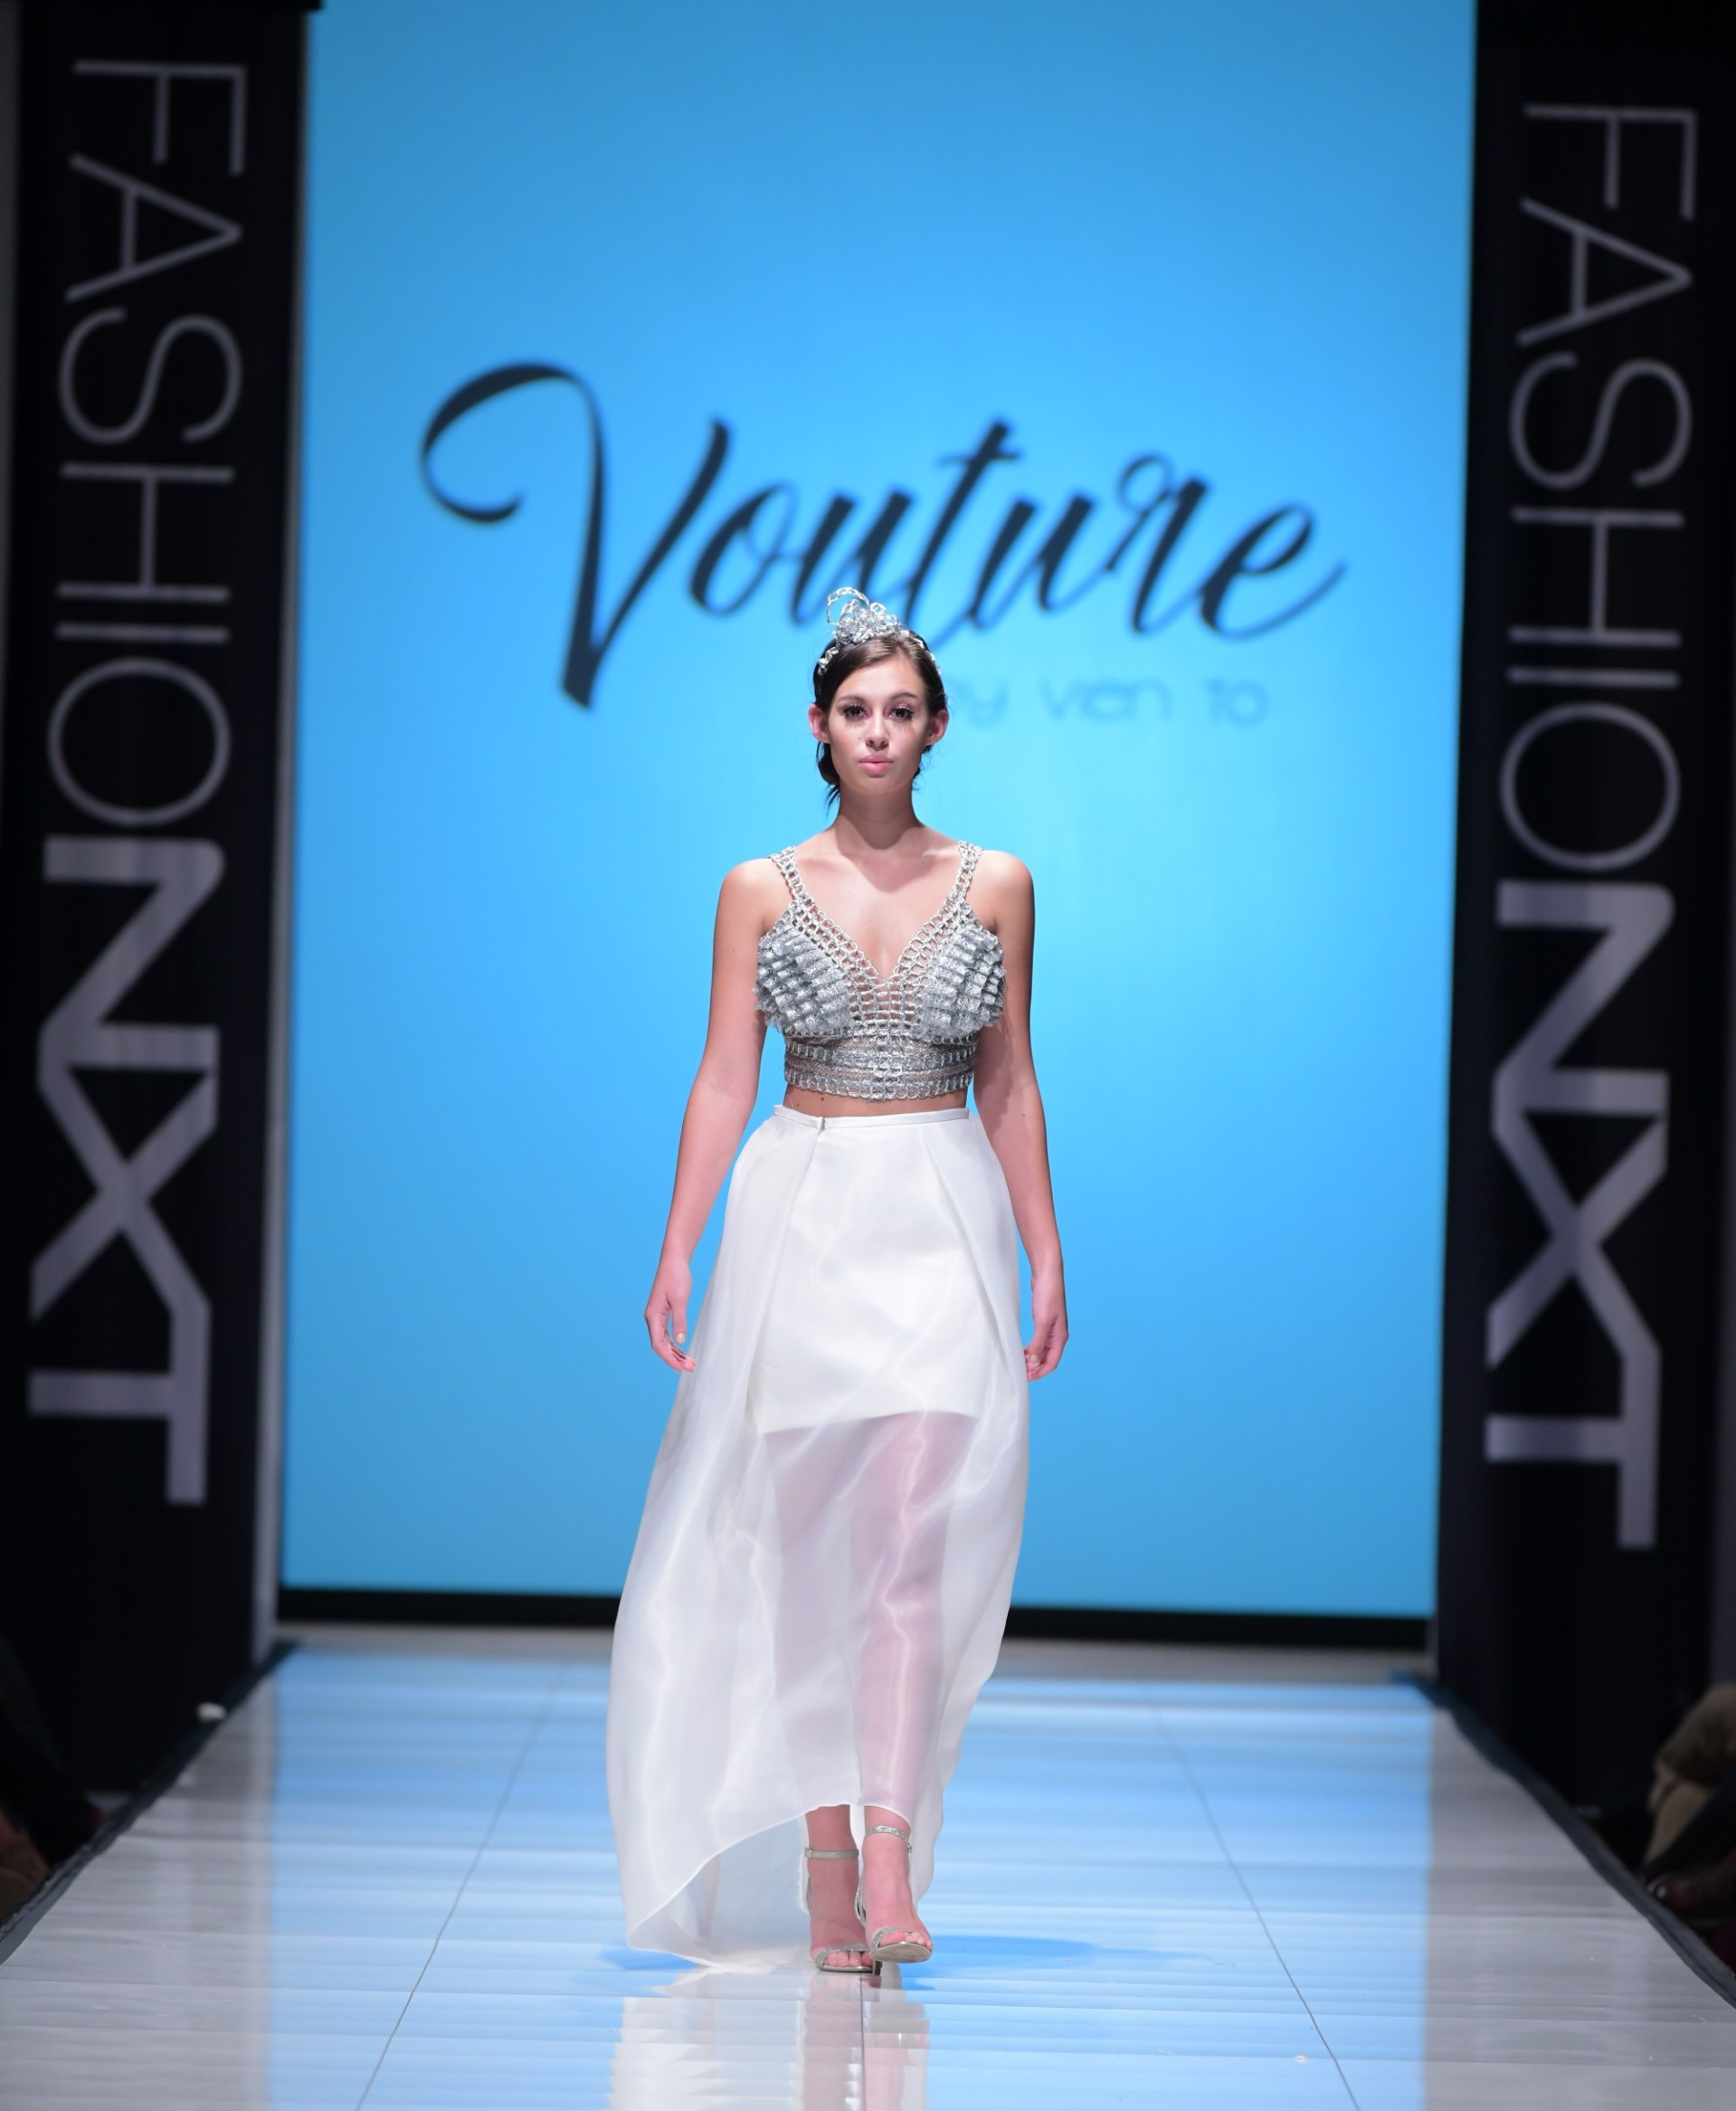 FashioNxt Week, Vouture by Vien To | photo courtesy of FashioNxt Week